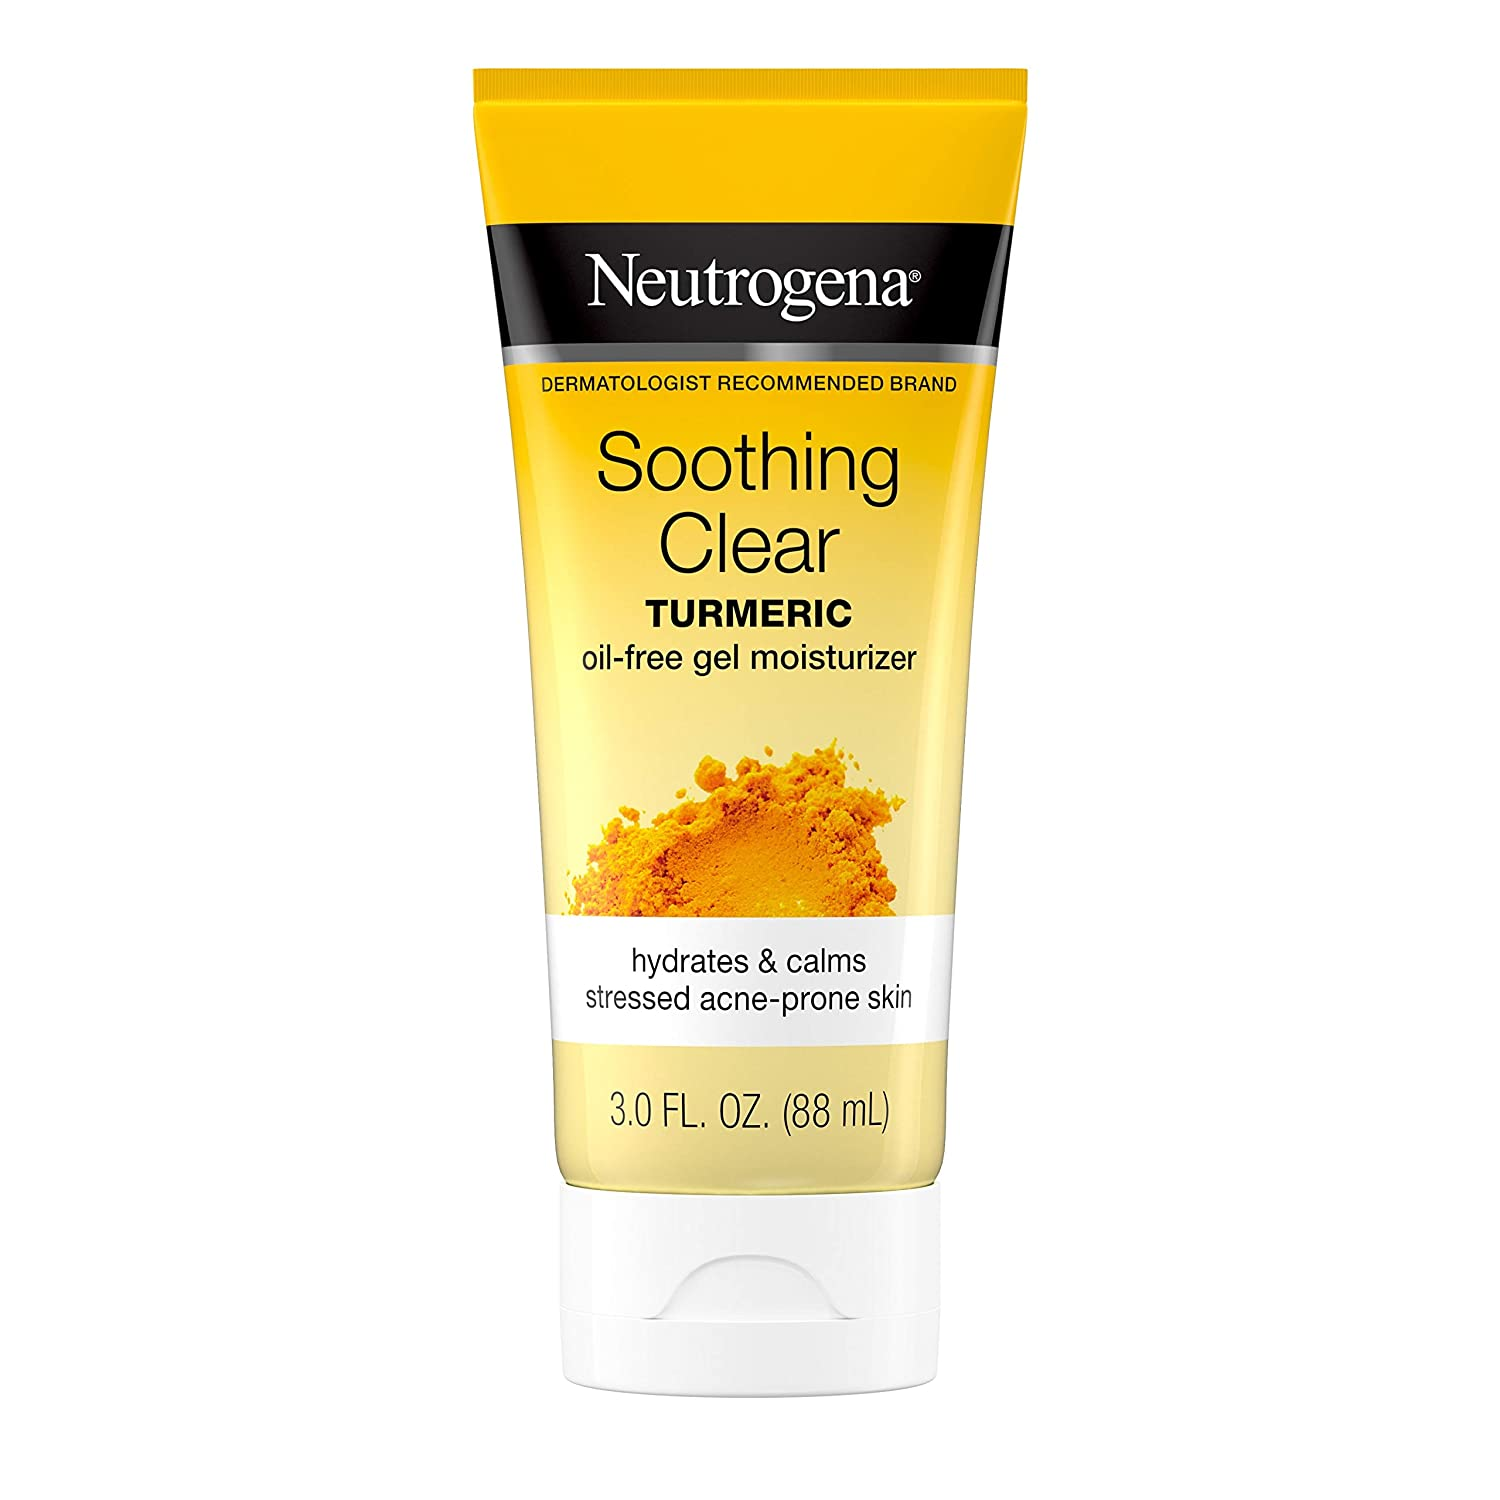 Neutrogena Soothing Clear Gel Facial Moisturizer with Calming Turmeric, Hydrating Oil-Free Face Cream for Acne Prone Skin, Paraben-Free, Not Tested on Animals, 3 fl. Oz